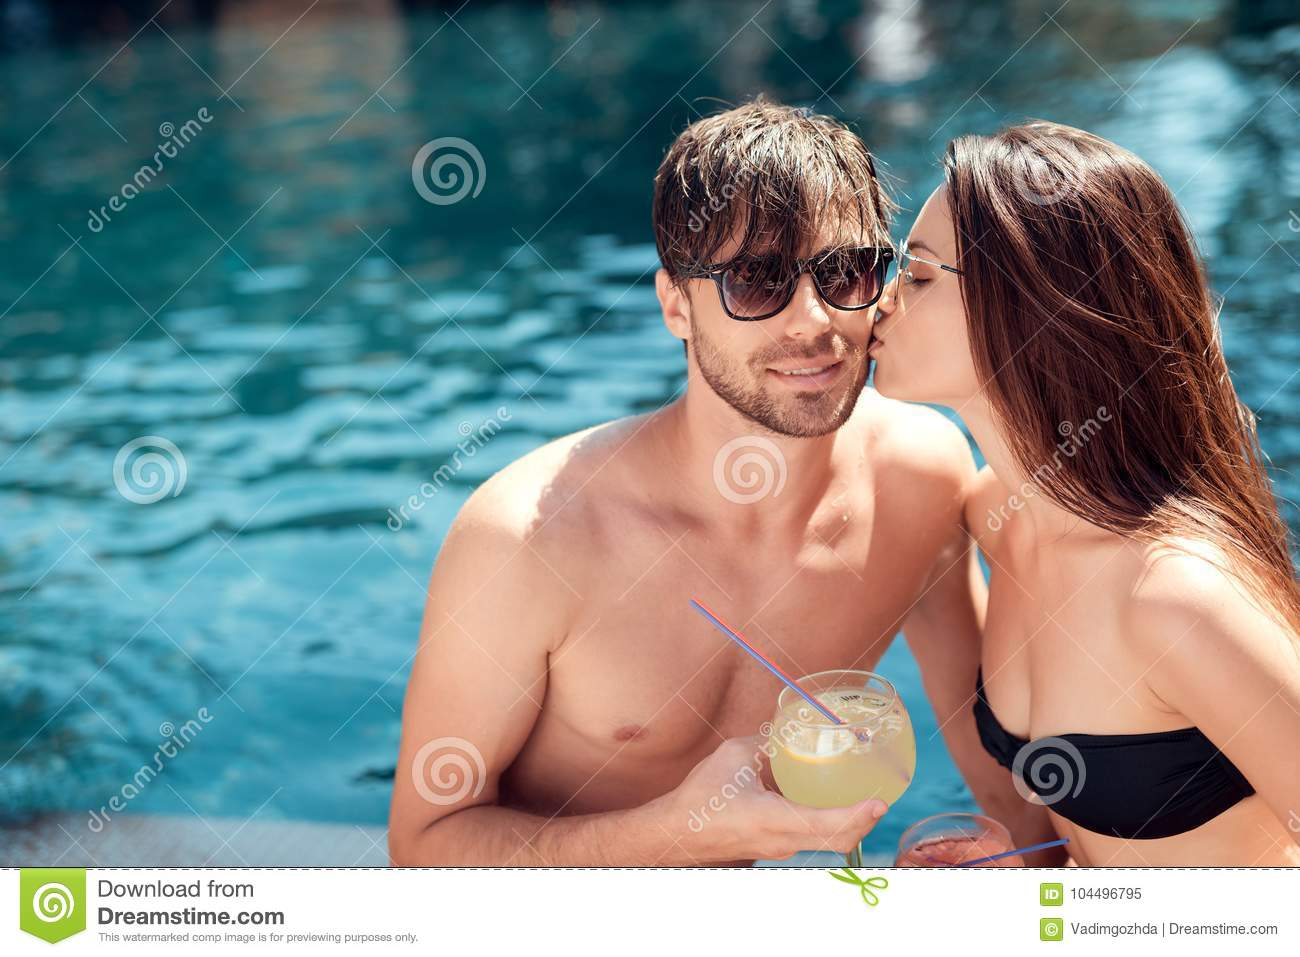 TINA: Girls kissing nice in the pool